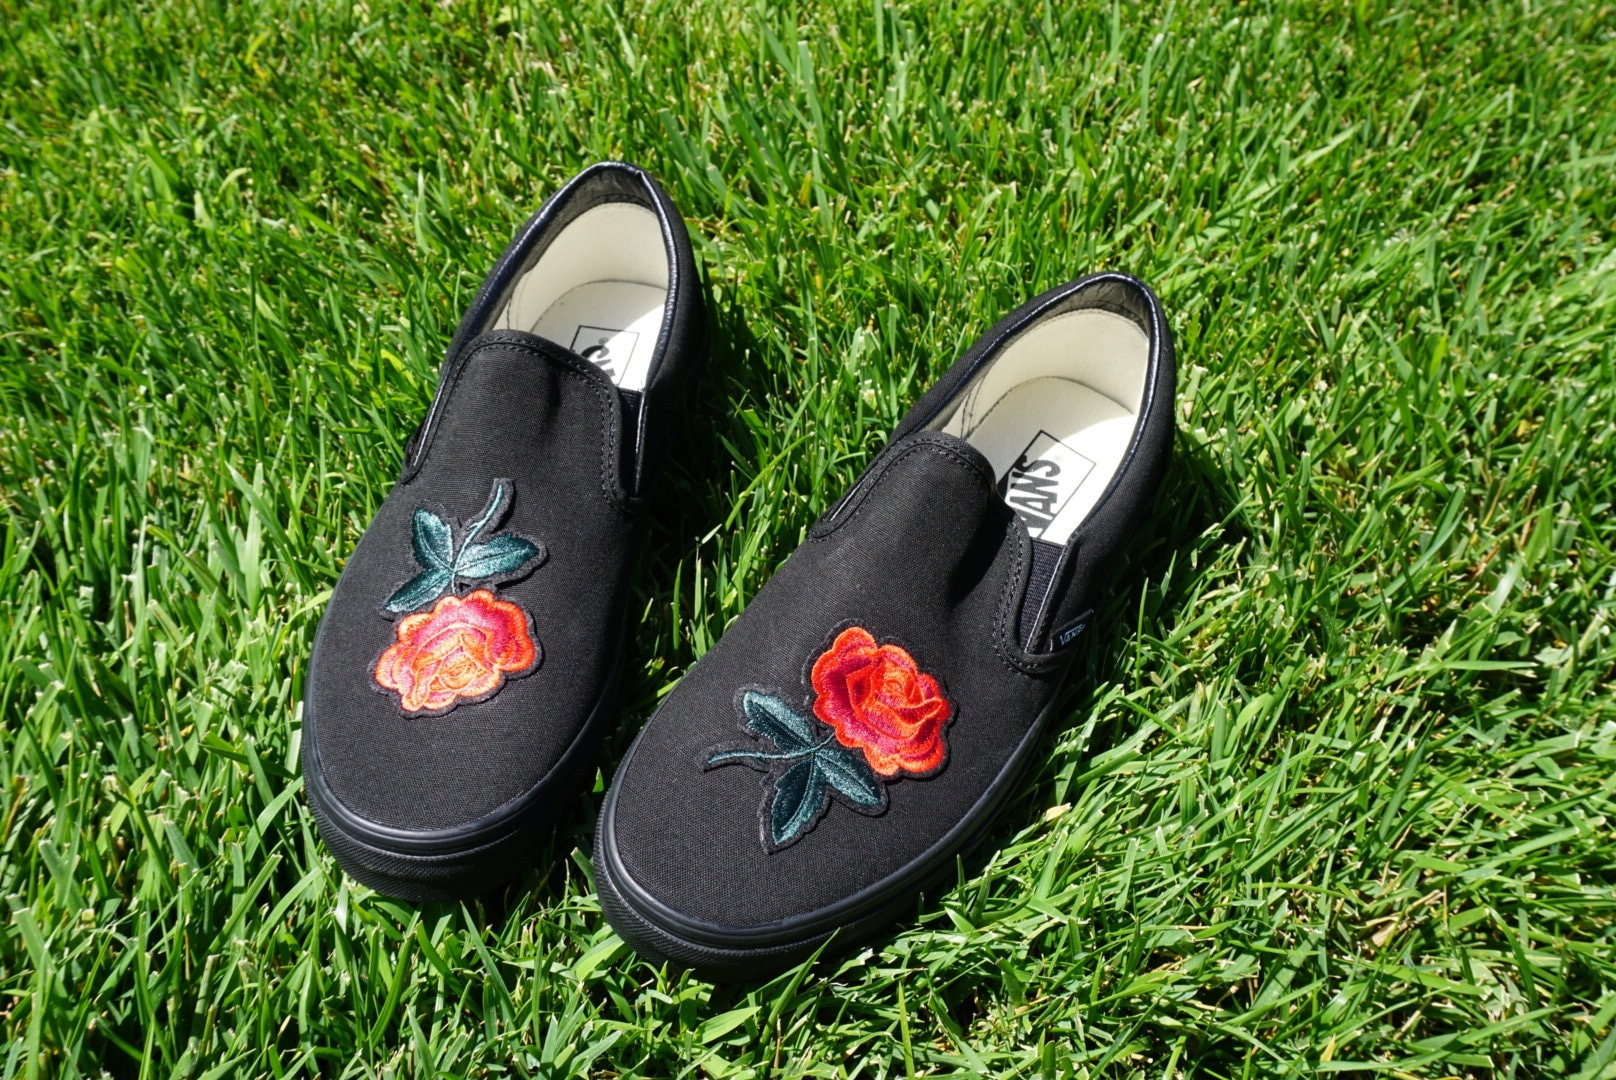 vans slip on with roses